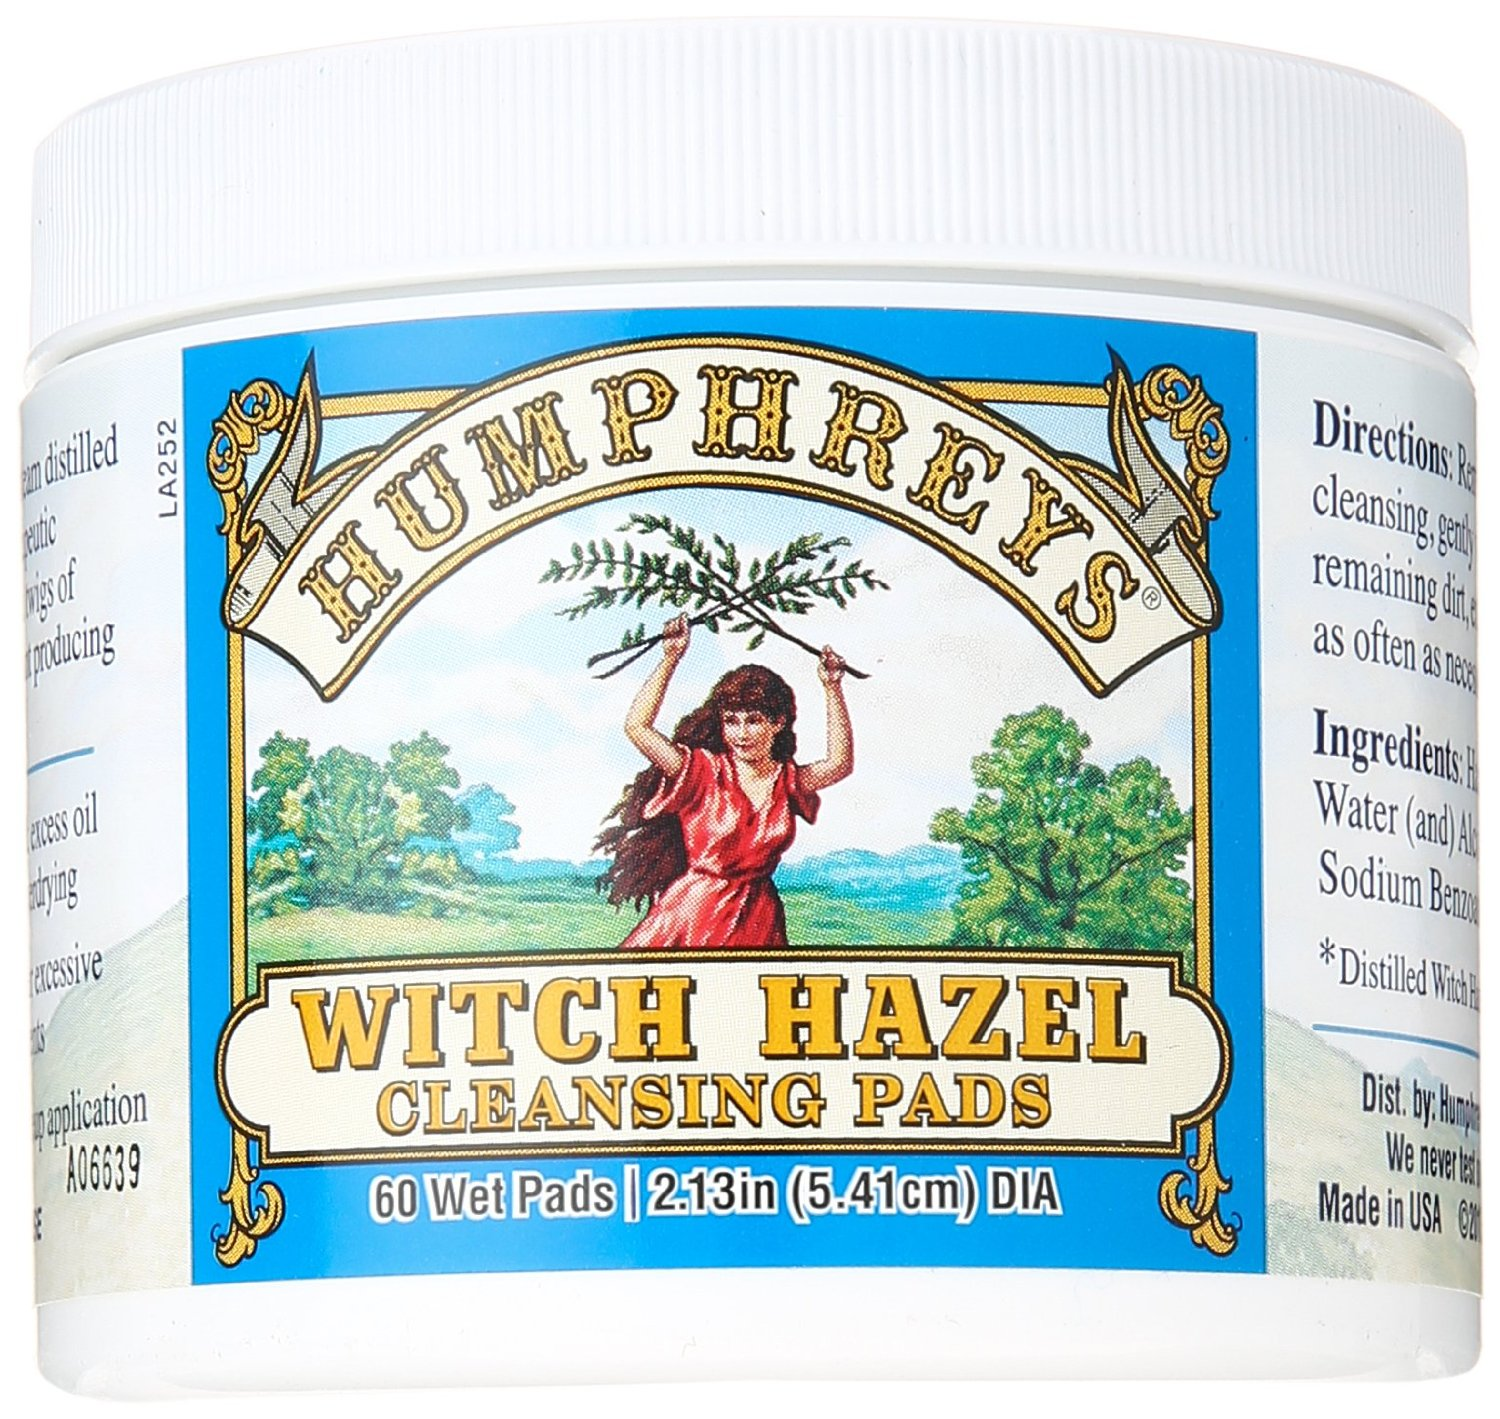 HUMPHREYS PHARMACAL INC: Witch Hazel Astringent Cleansing Pads 60 CT